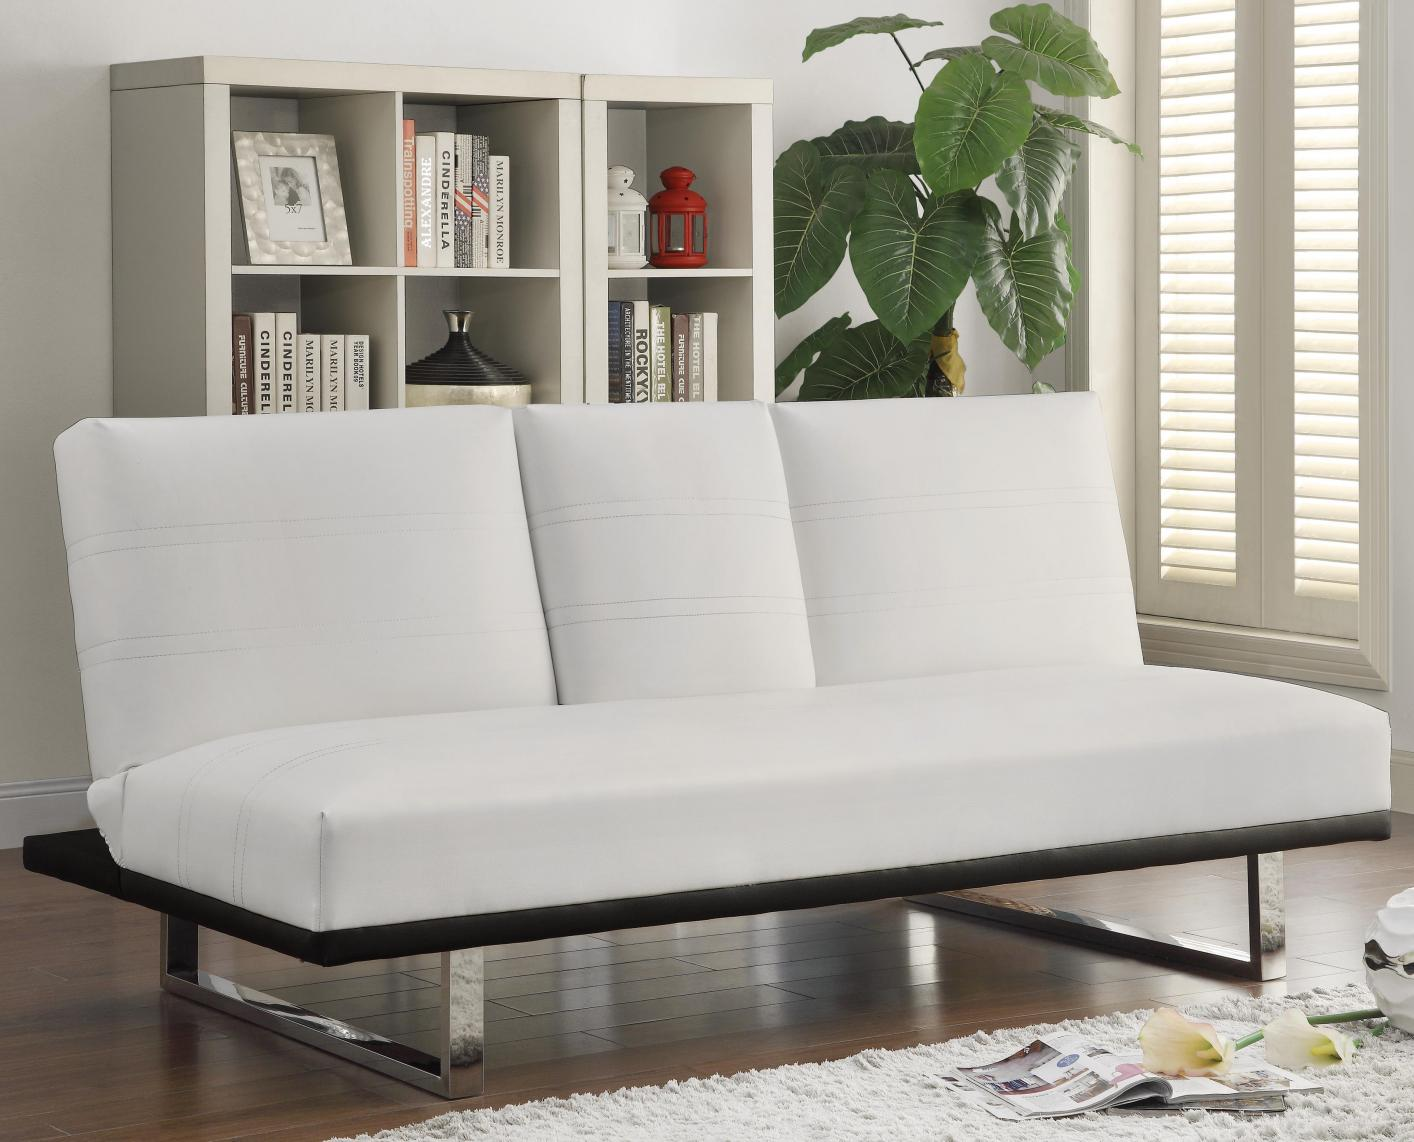 White Leather Futon Steal A Sofa Furniture Outlet Los